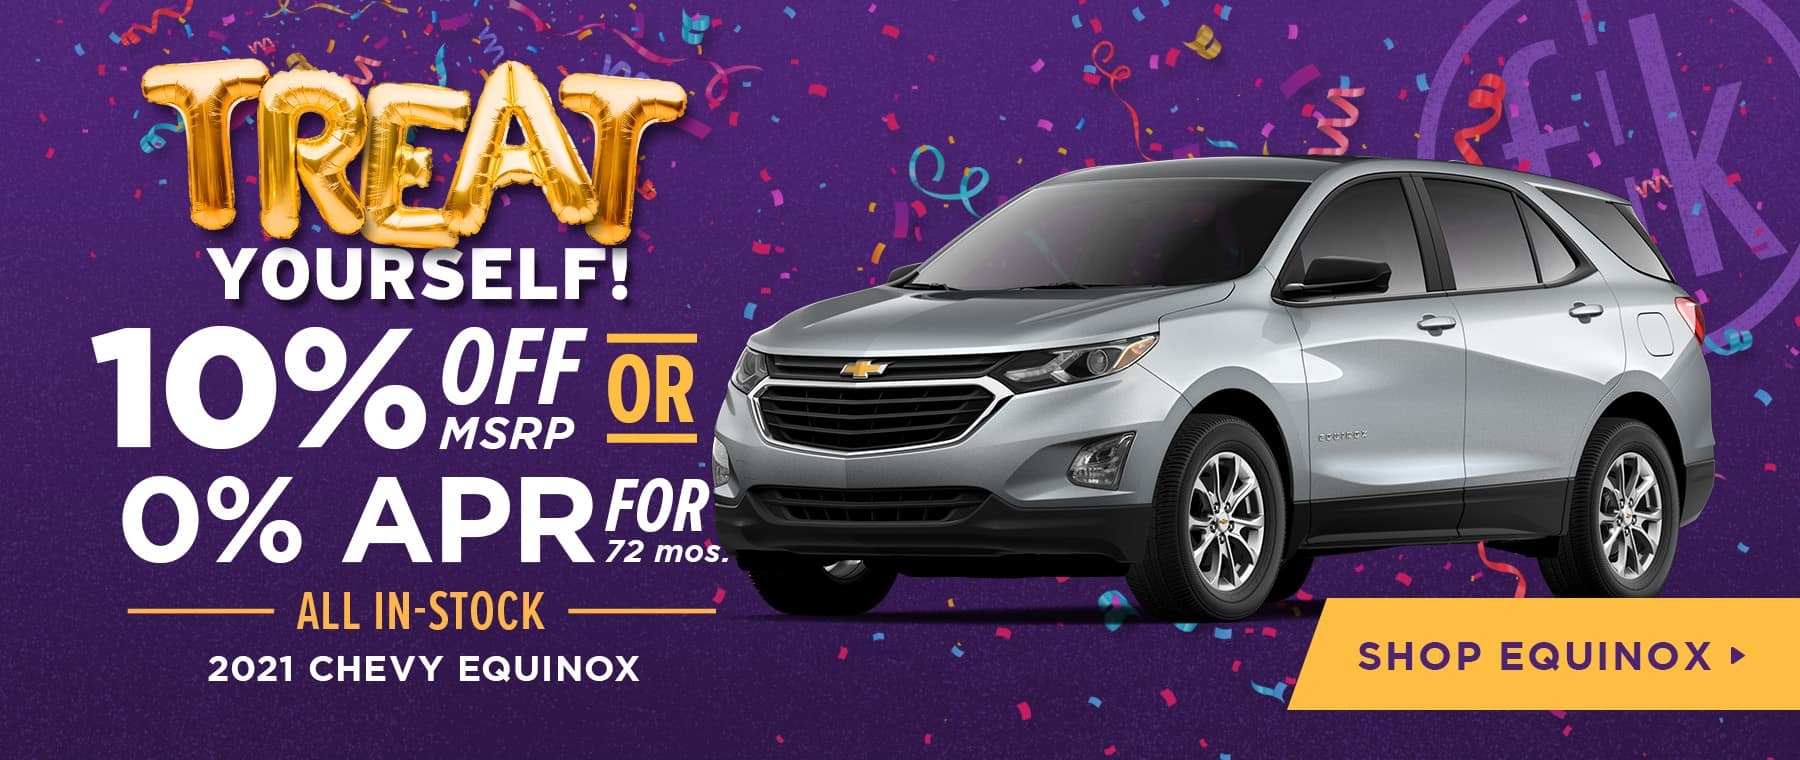 10% Off MSRP OR 0% APR For 72 mos. All In-Stock 2021 Chevy Equinox